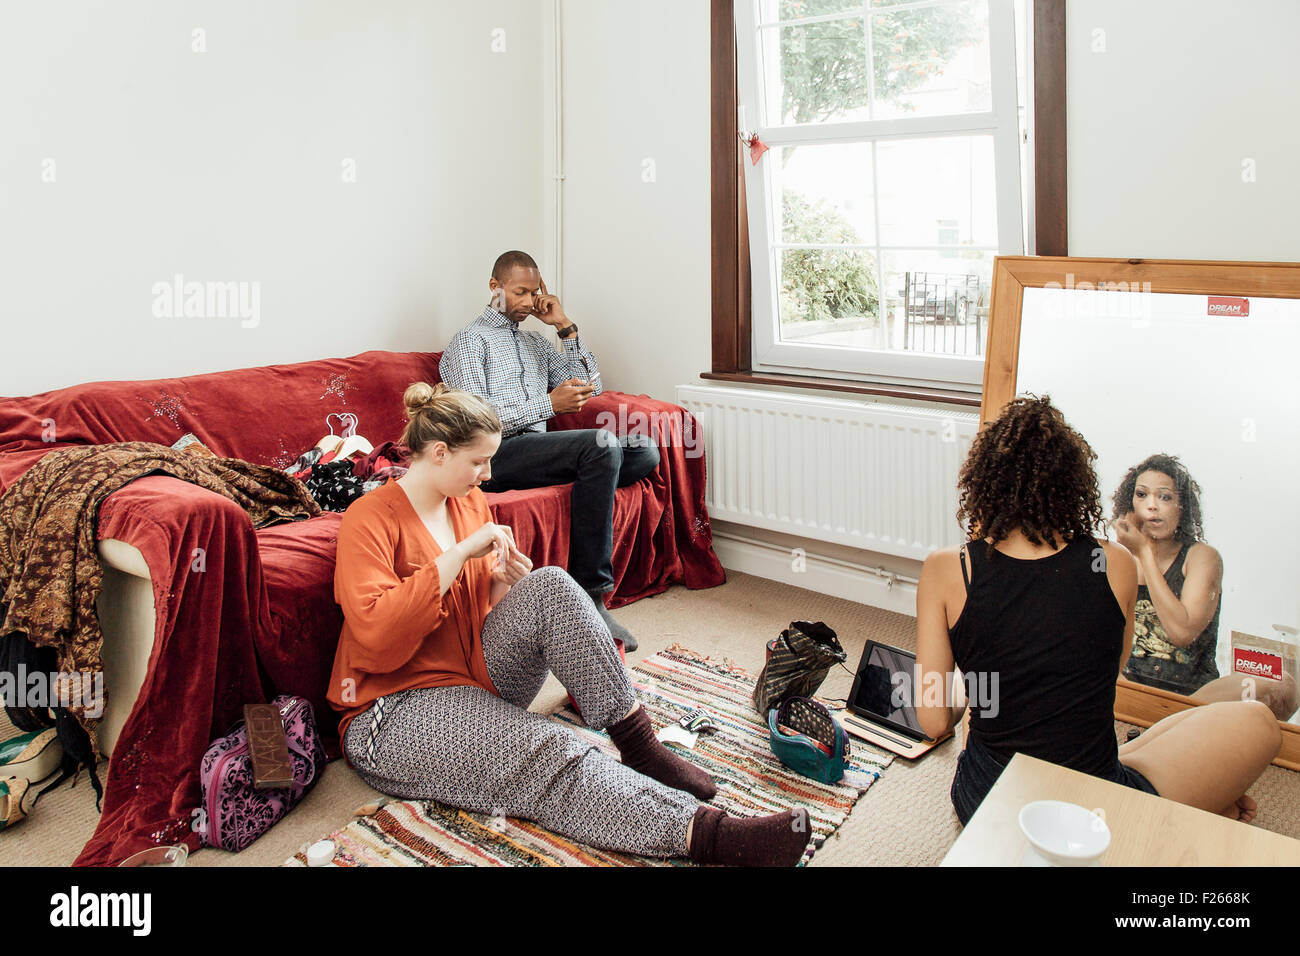 Students preparing for a night out - Stock Image